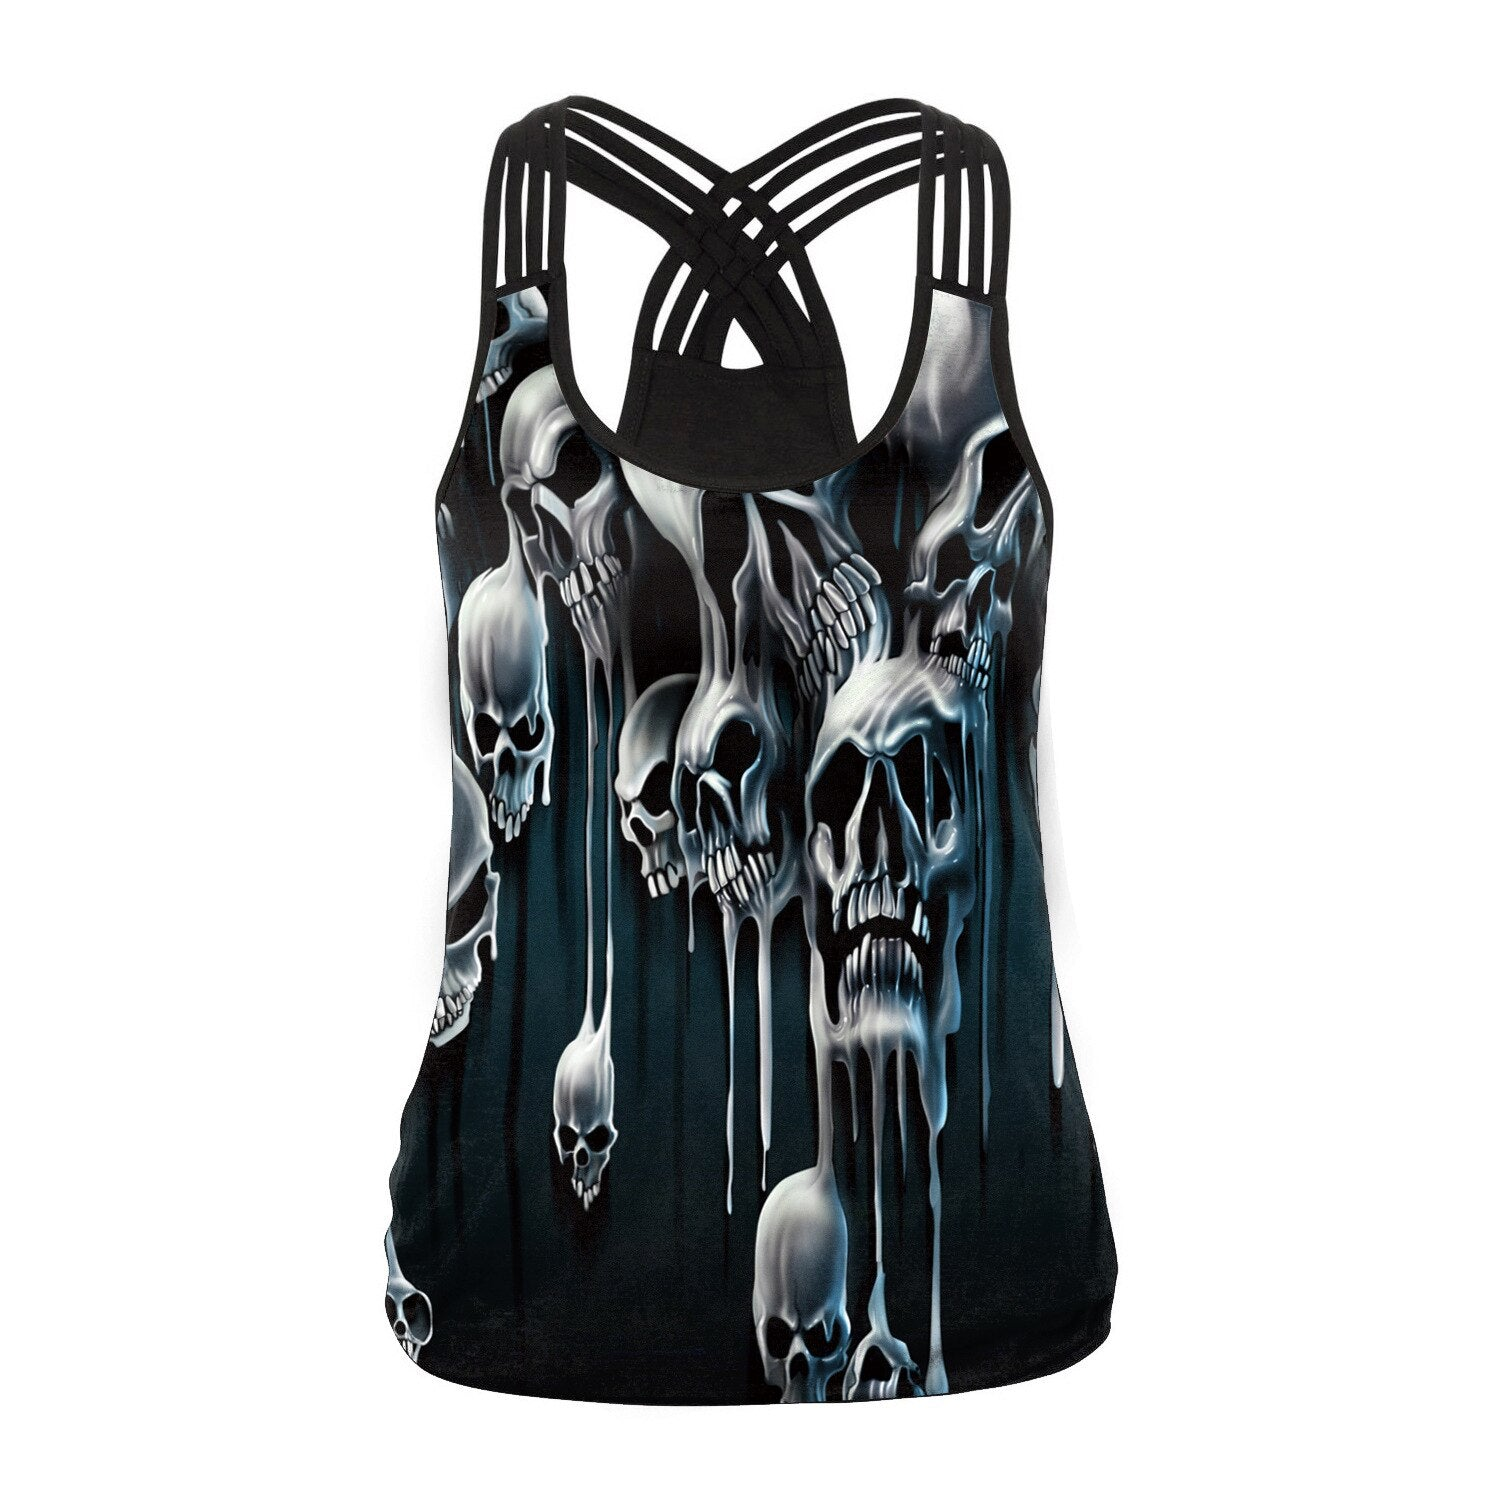 Sugar Skull Tank Top for Women / Halloween Fashion / Gothic Style Back Cross Sleeveless Vest #5 - HARD'N'HEAVY